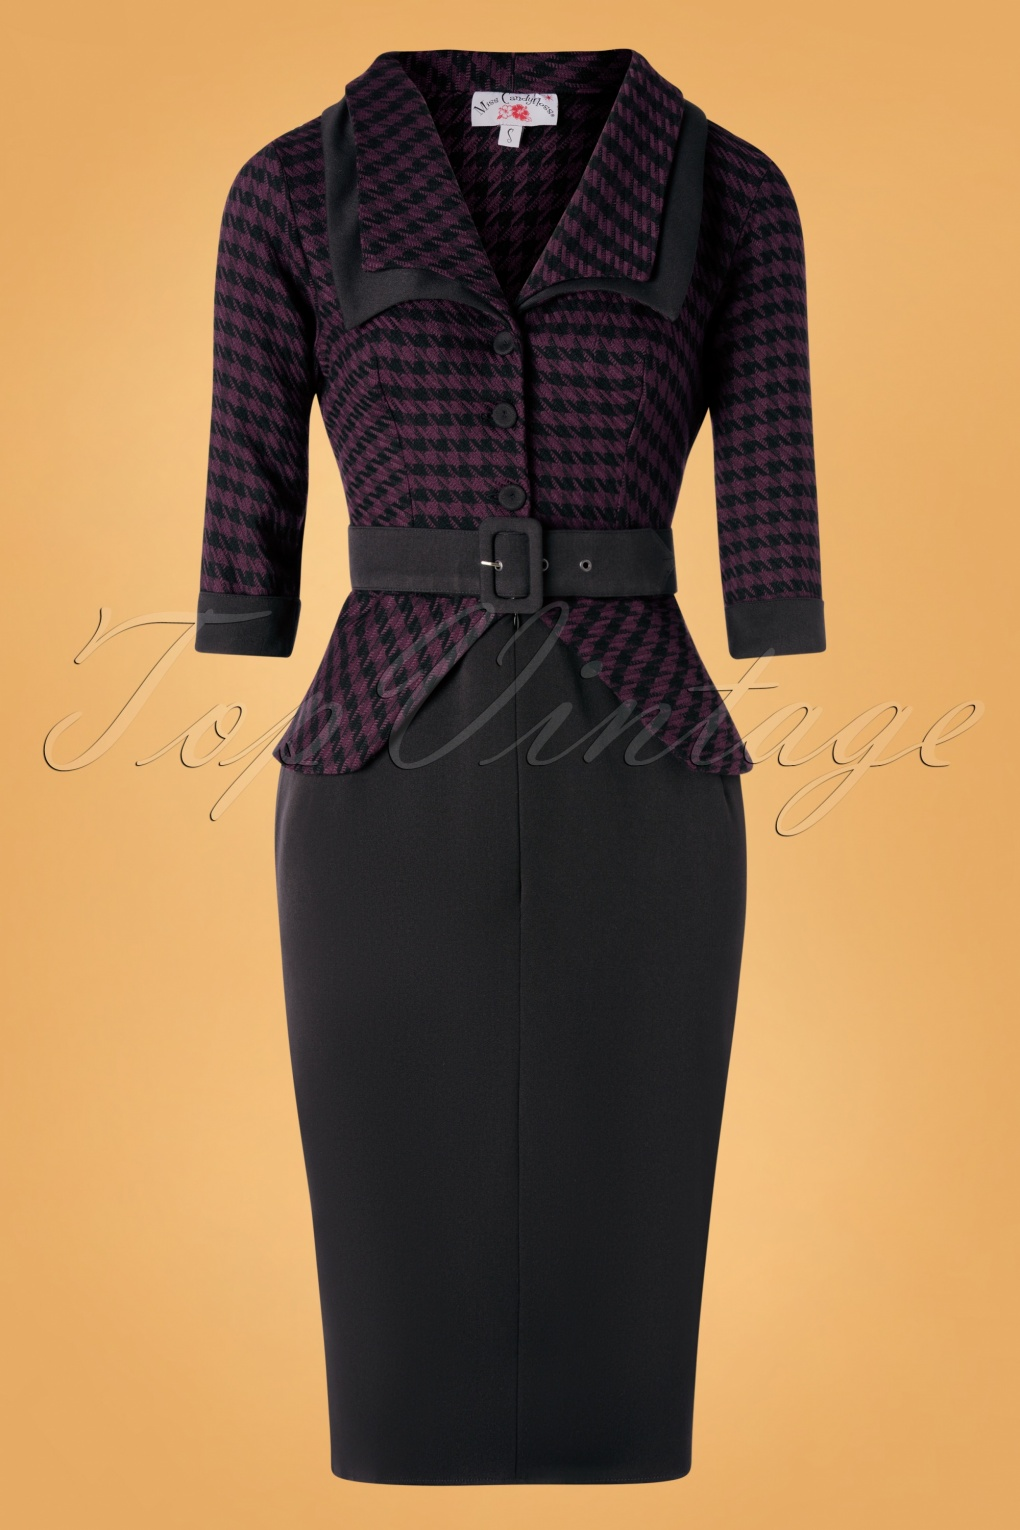 Women's 1940s Victory Suits and Utility Suits 40s Capucine Lou Pencil Dress in Black and Plum Houndstooth £96.93 AT vintagedancer.com